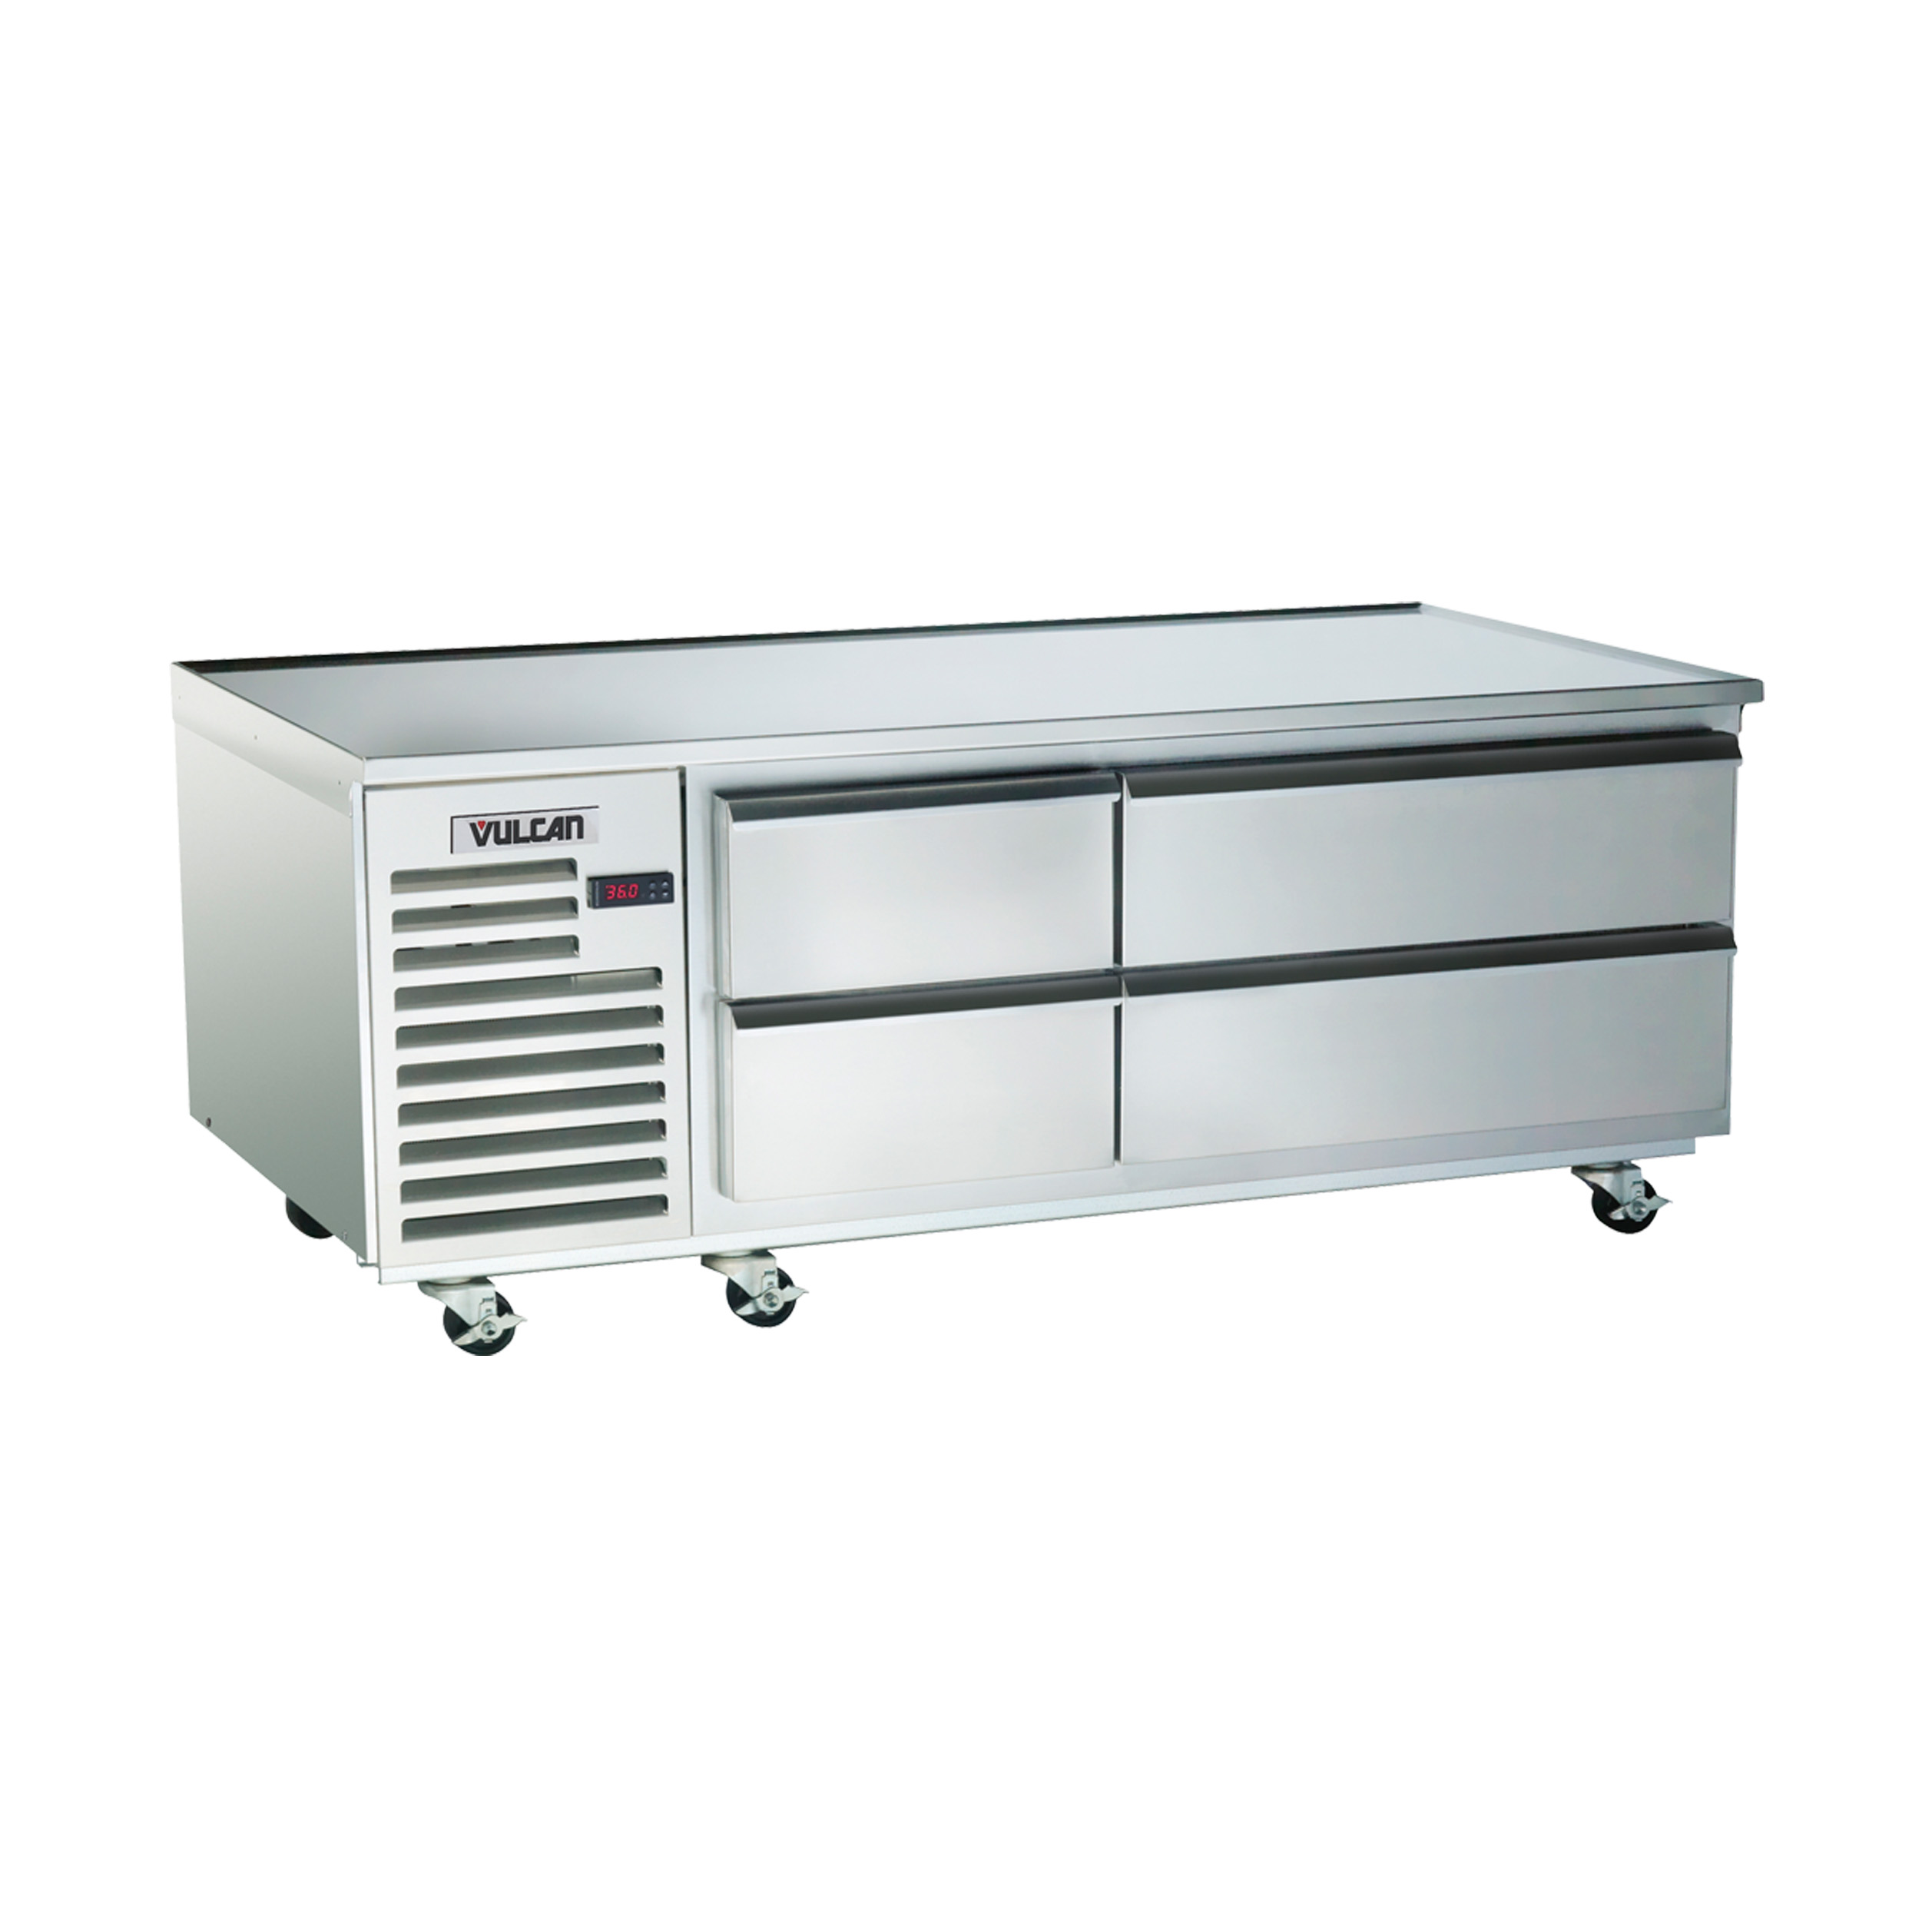 Vulcan VR48 equipment stand, refrigerated base